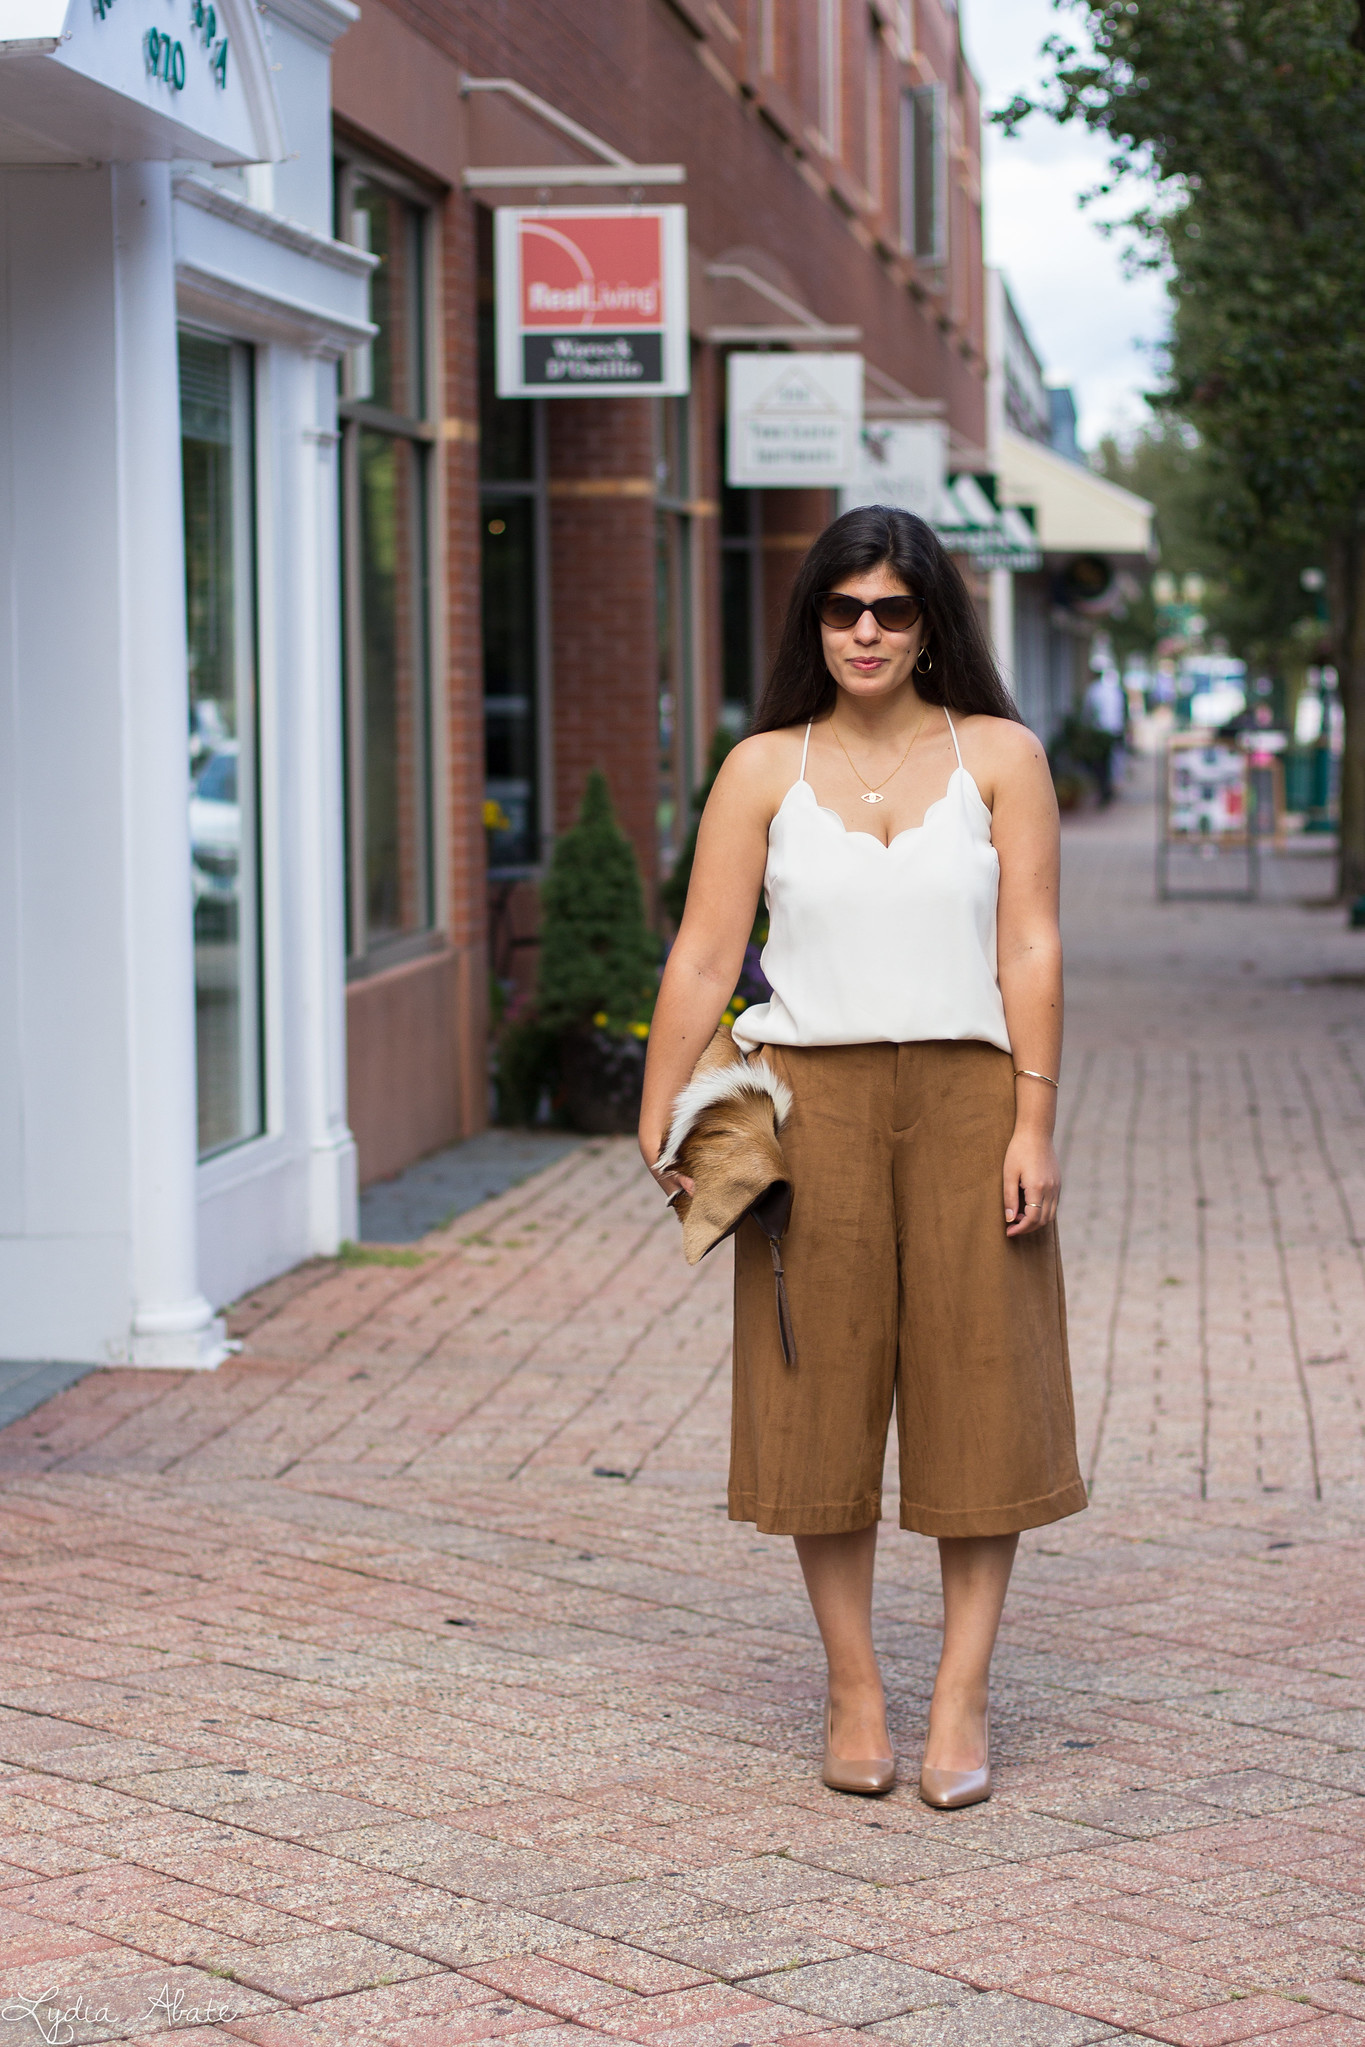 Cream Scalloped Cami, Brown Suede Culottes, Springbok Clutch-4.jpg